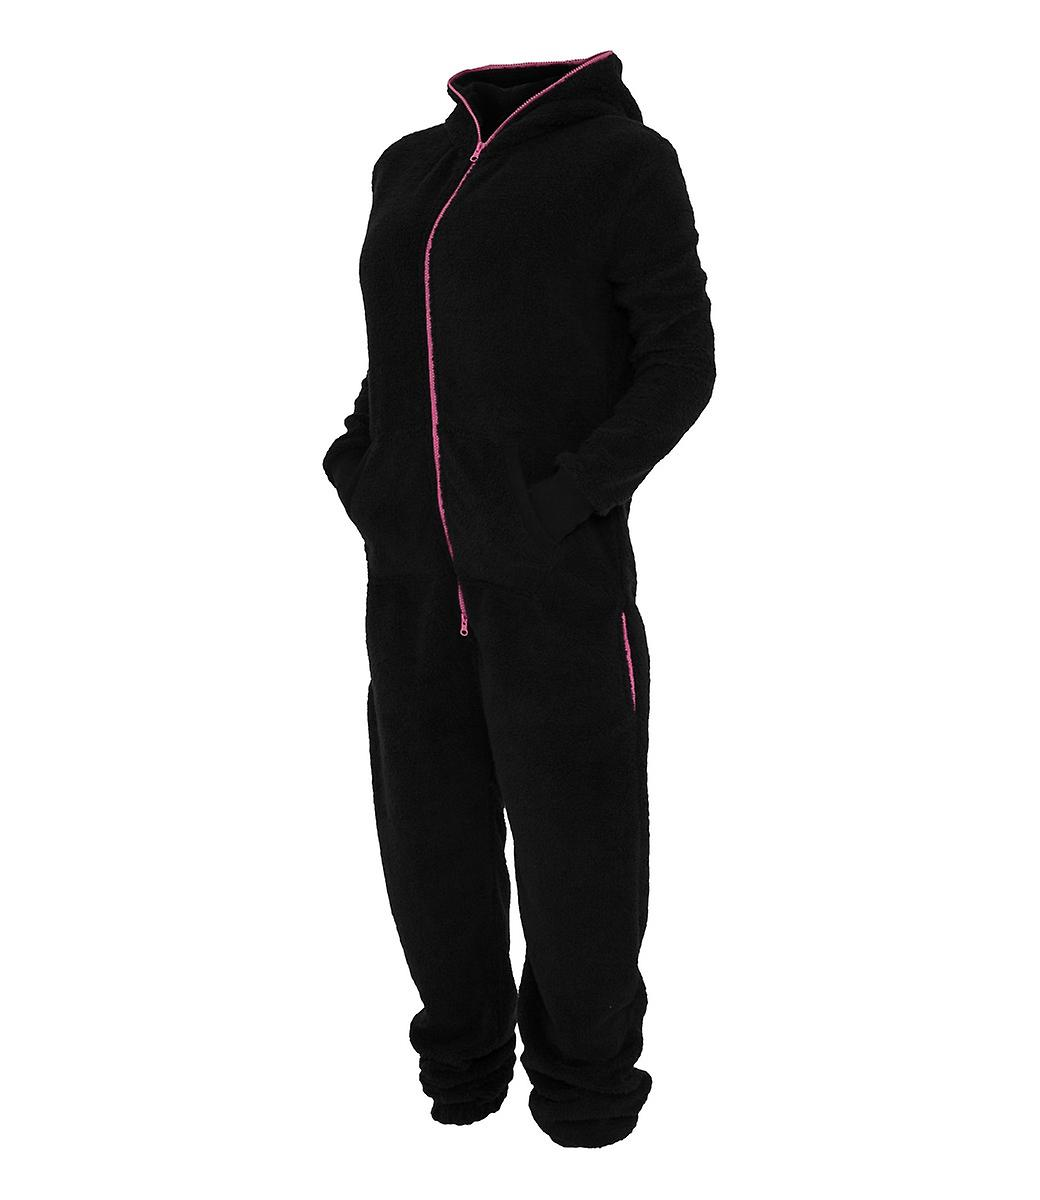 Urban classics ladies Teddy jumpsuit